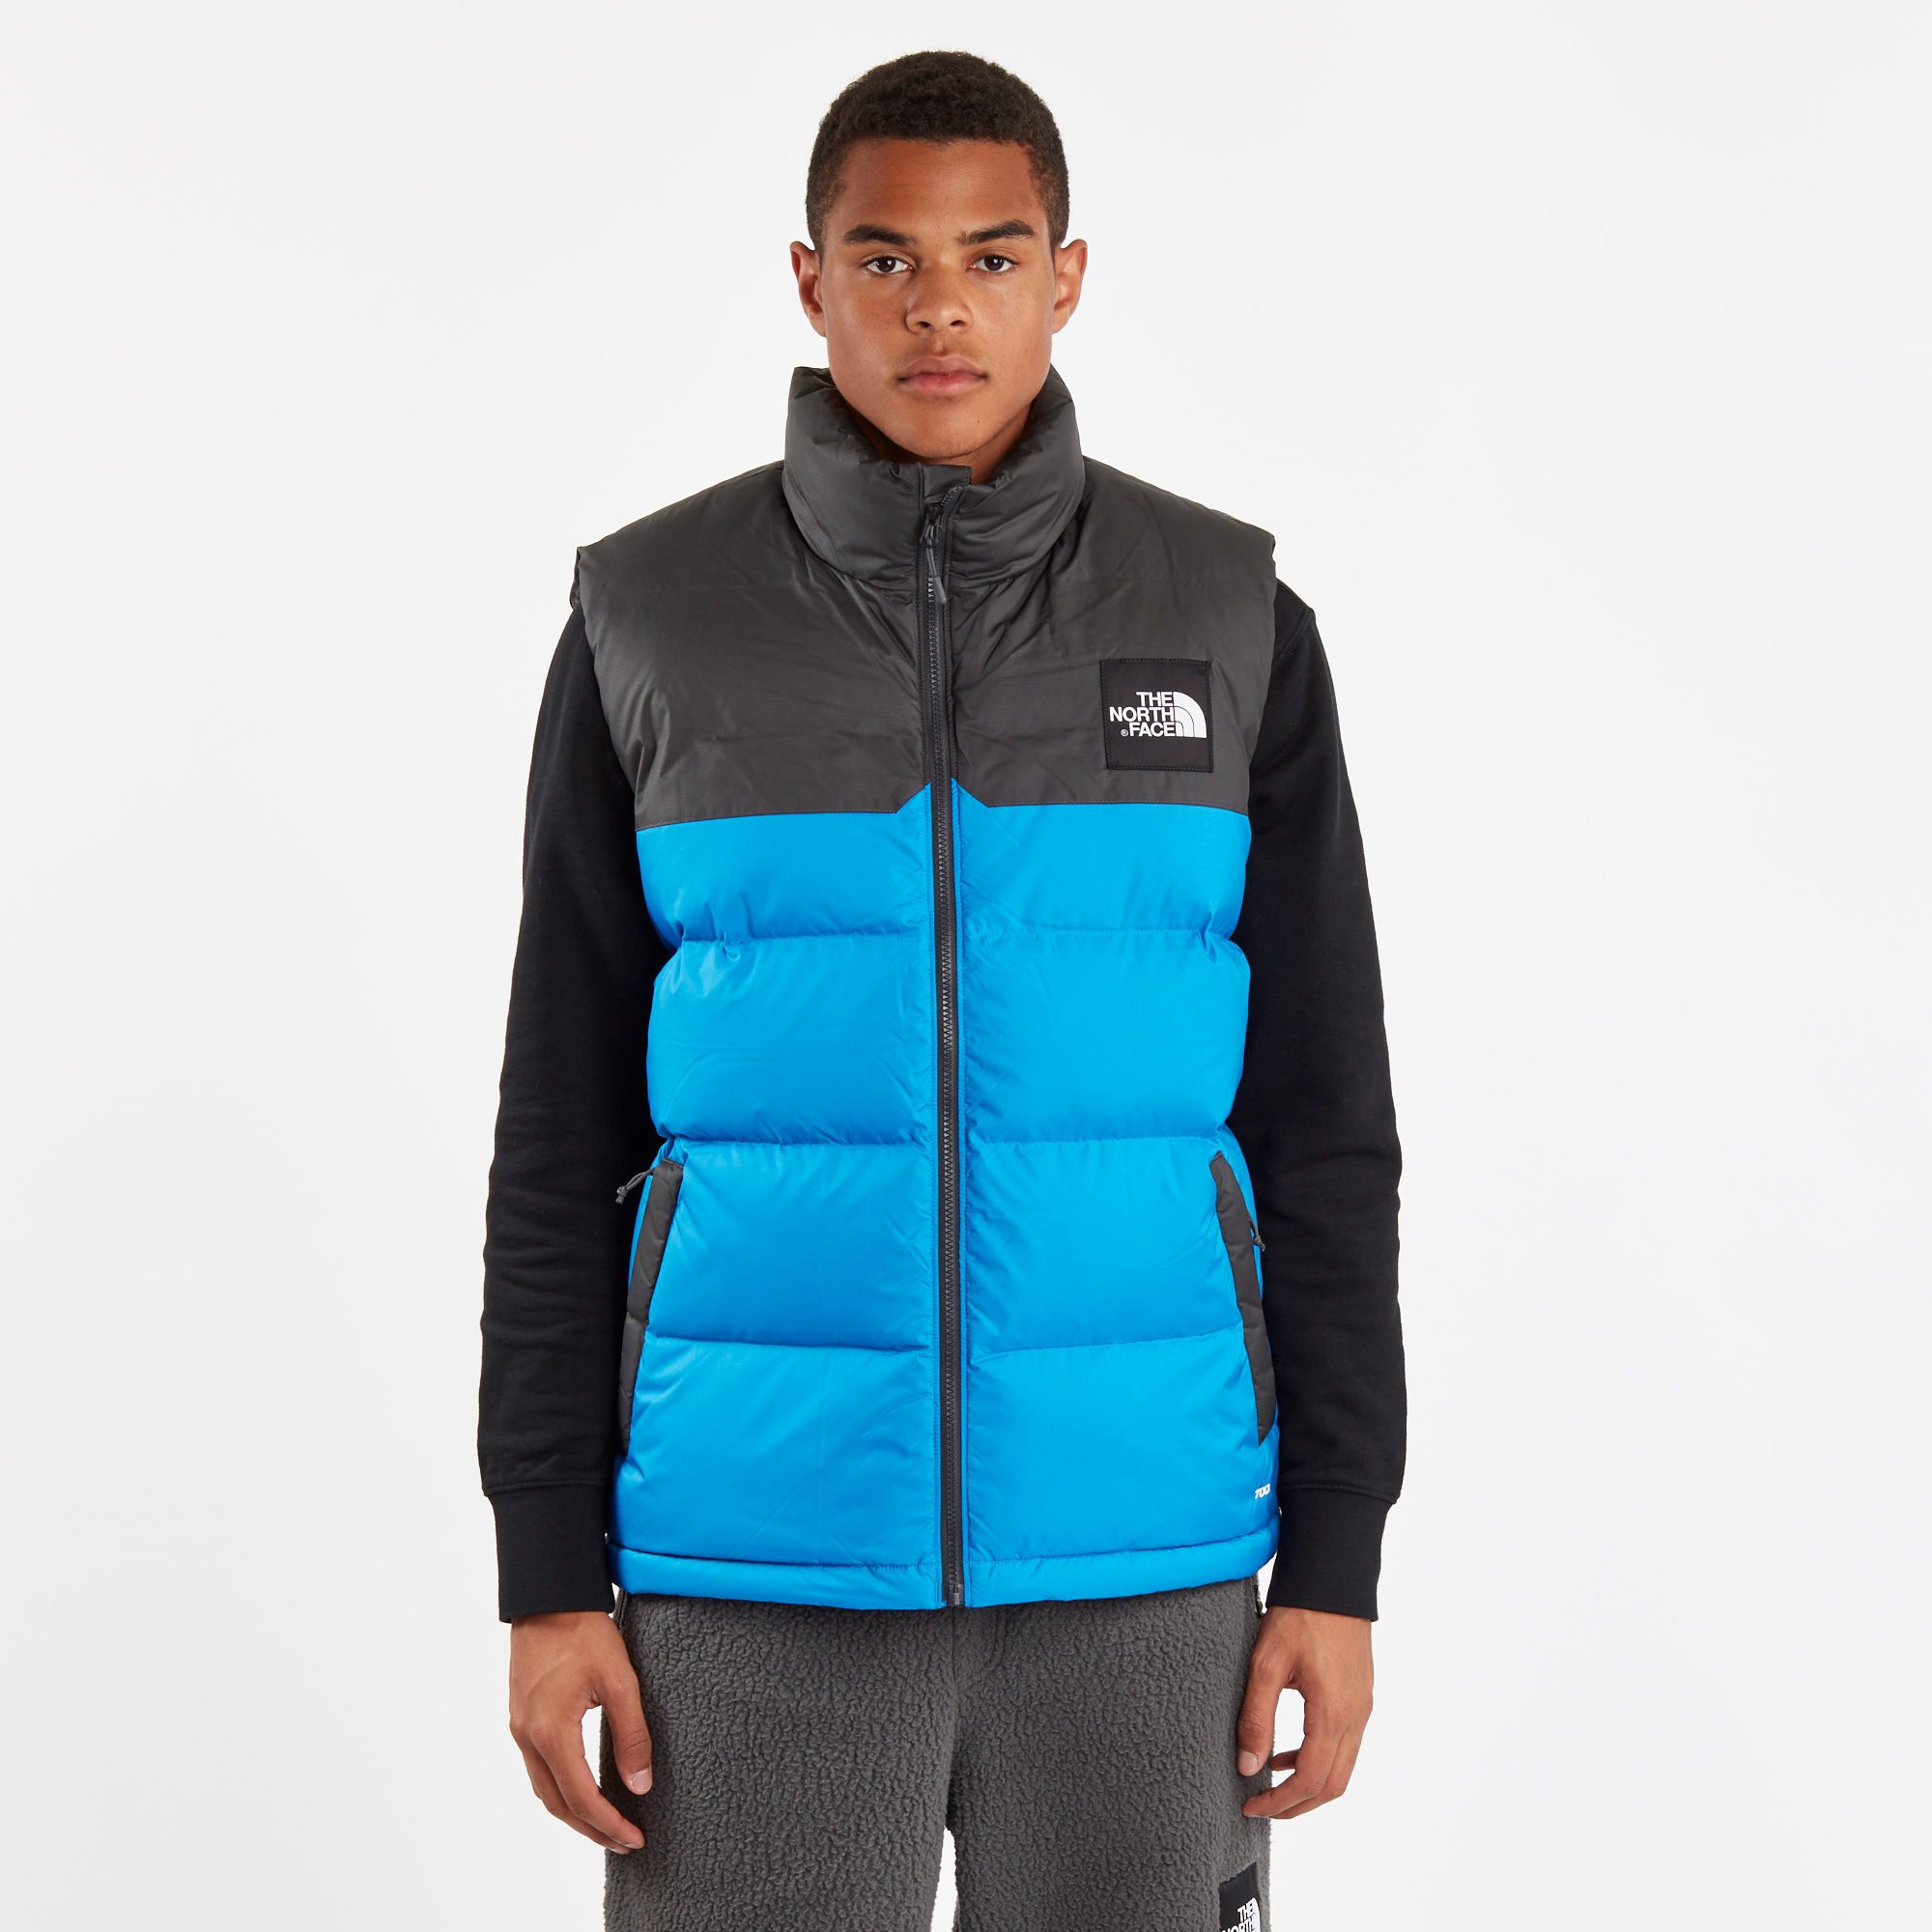 f5b7f718c575 The North Face M 1992 Nuptse Vest - T92zwnaa2 - Sneakersnstuff ...